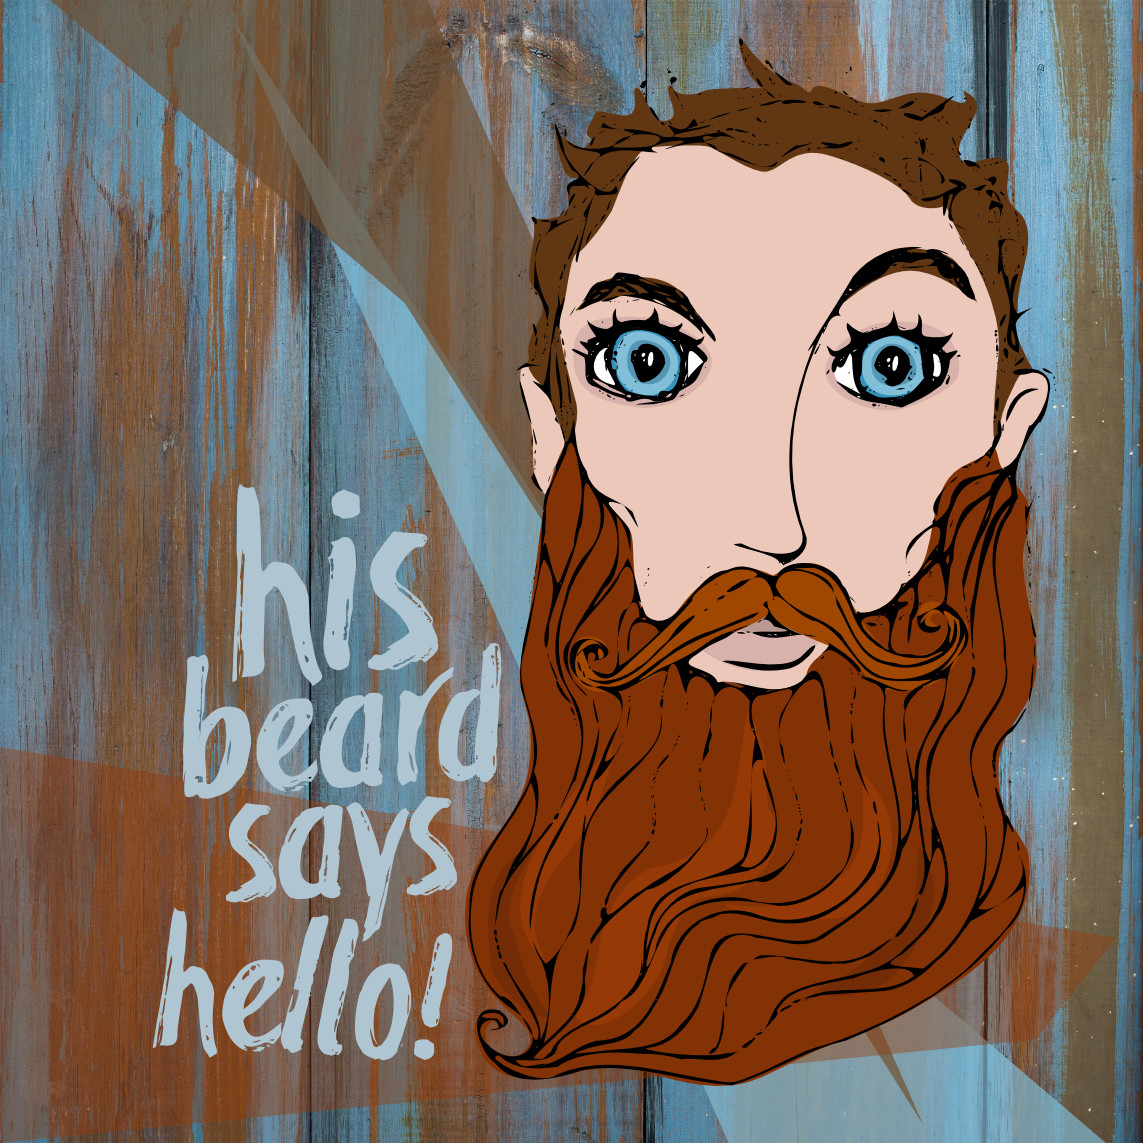 his beard says hello